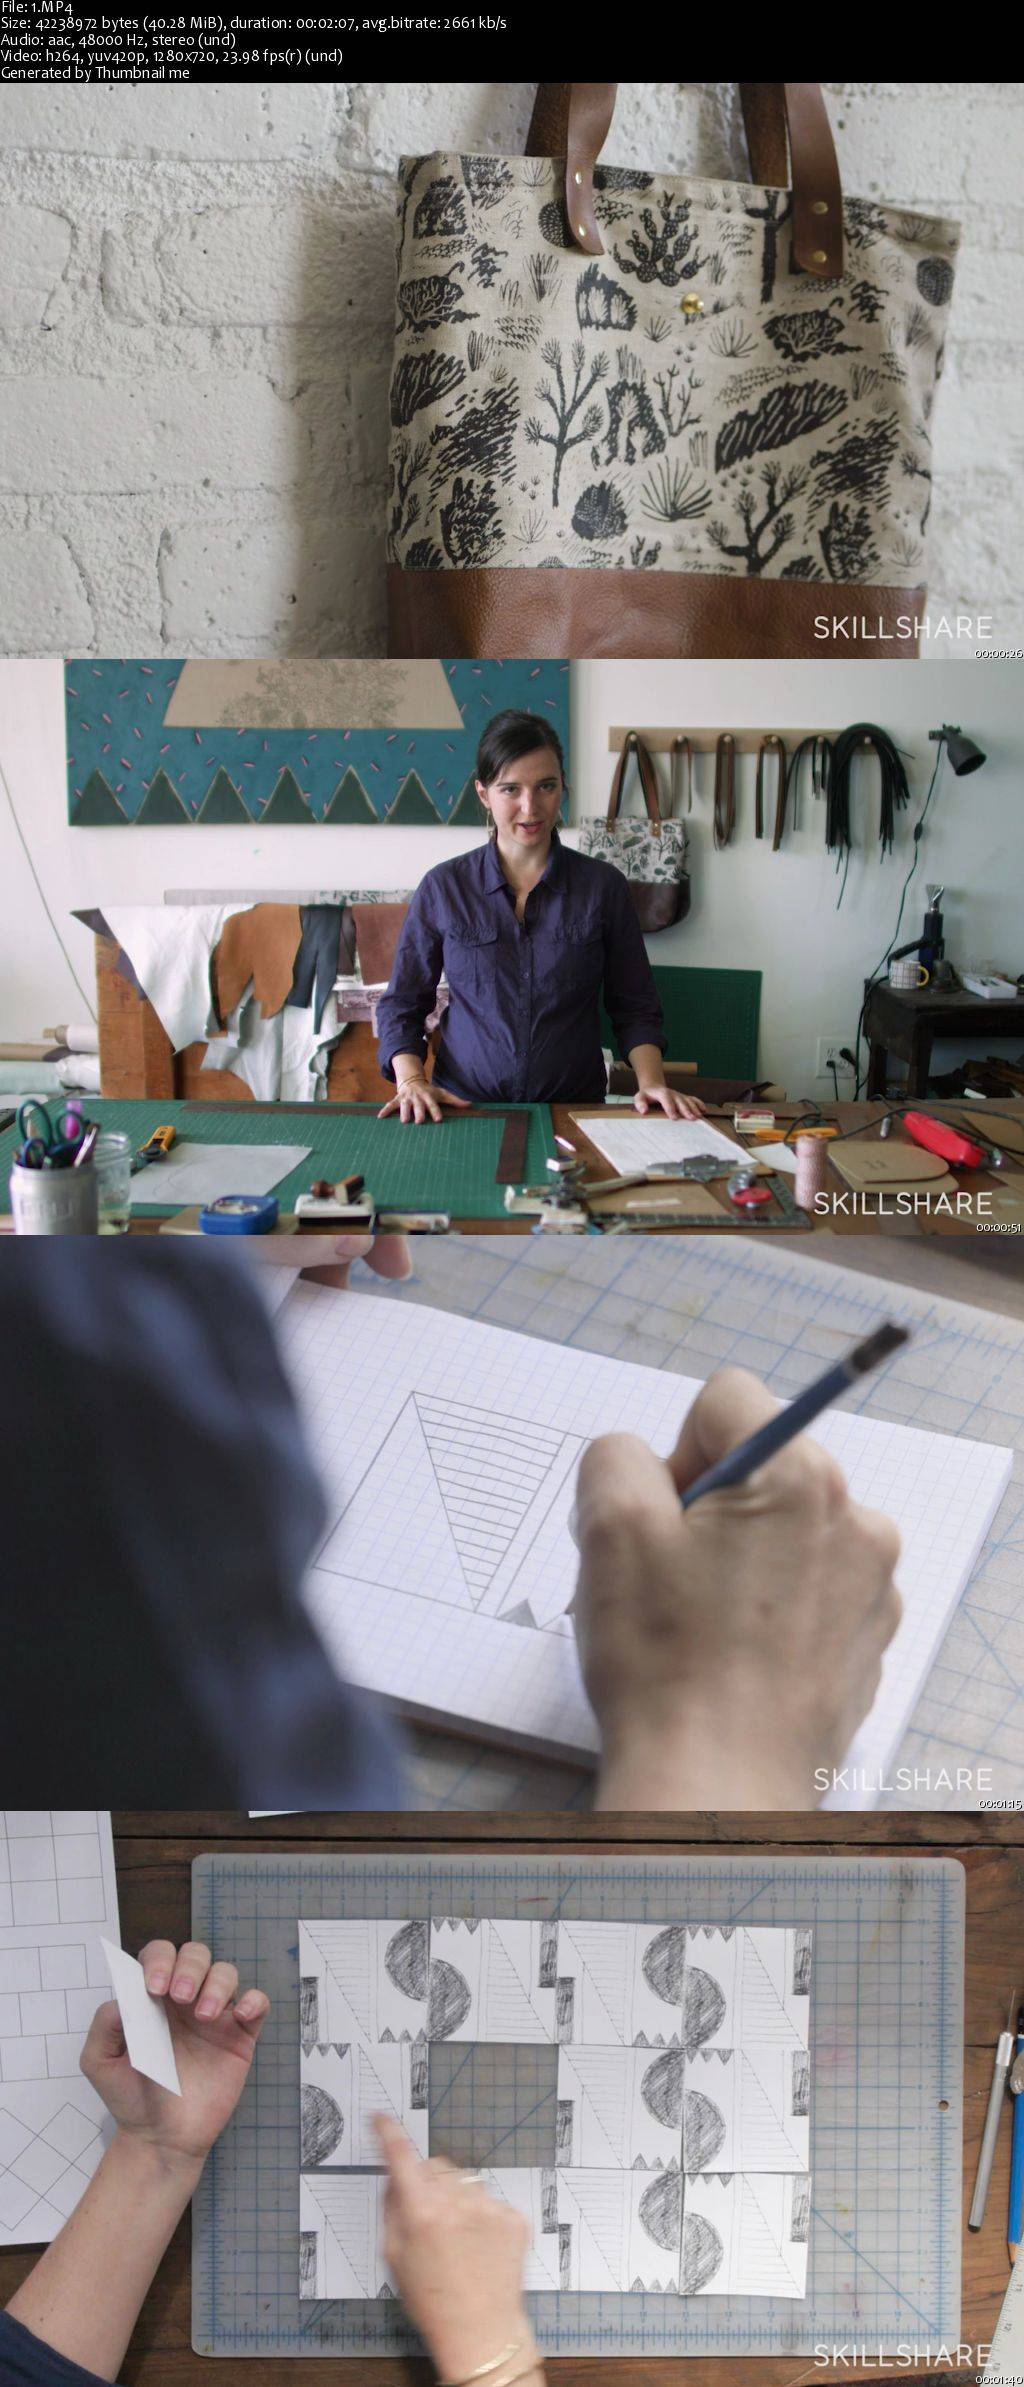 Patterns By Hand: Sketch a Geometric Design